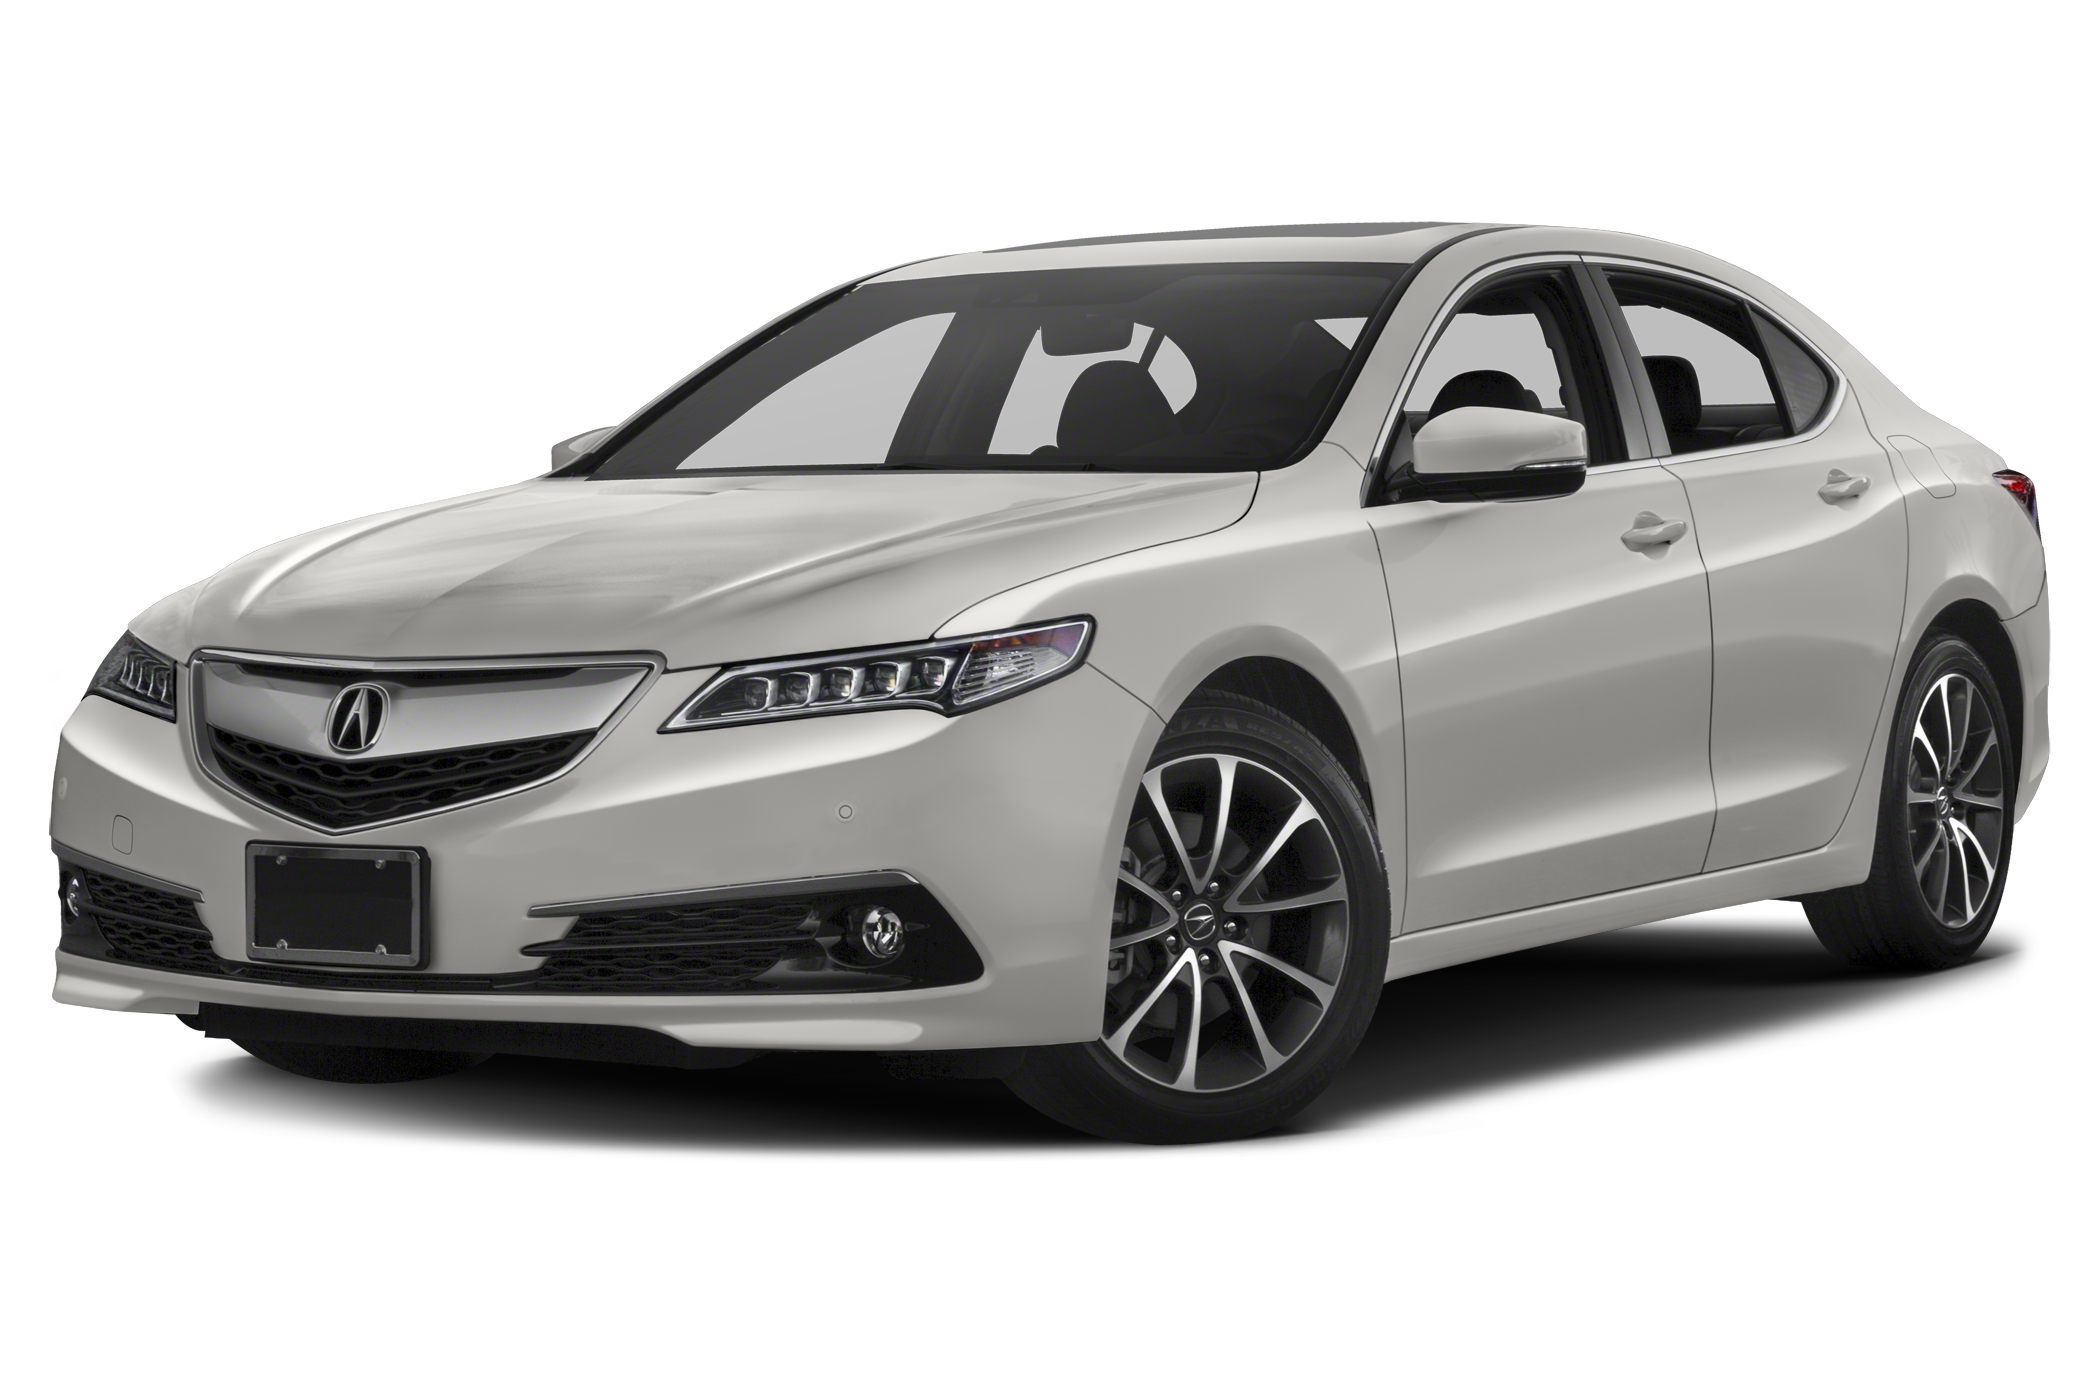 2016 Acura TLX V6 Advance 4dr Front wheel Drive Sedan Pricing and